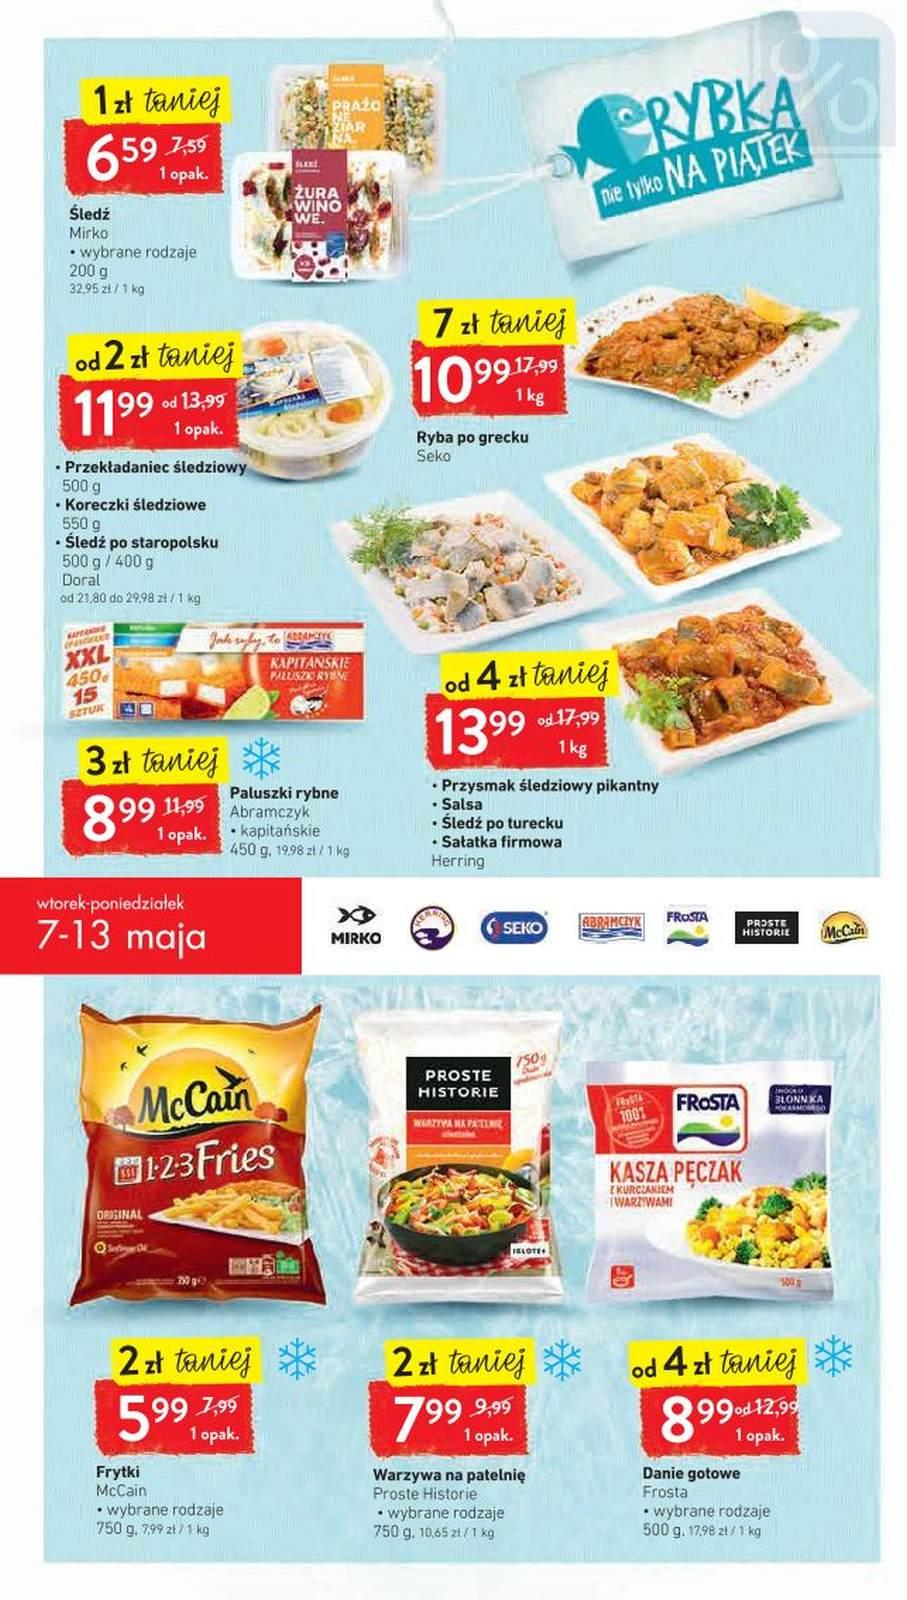 Gazetka promocyjna Intermarche do 13/05/2019 str.9